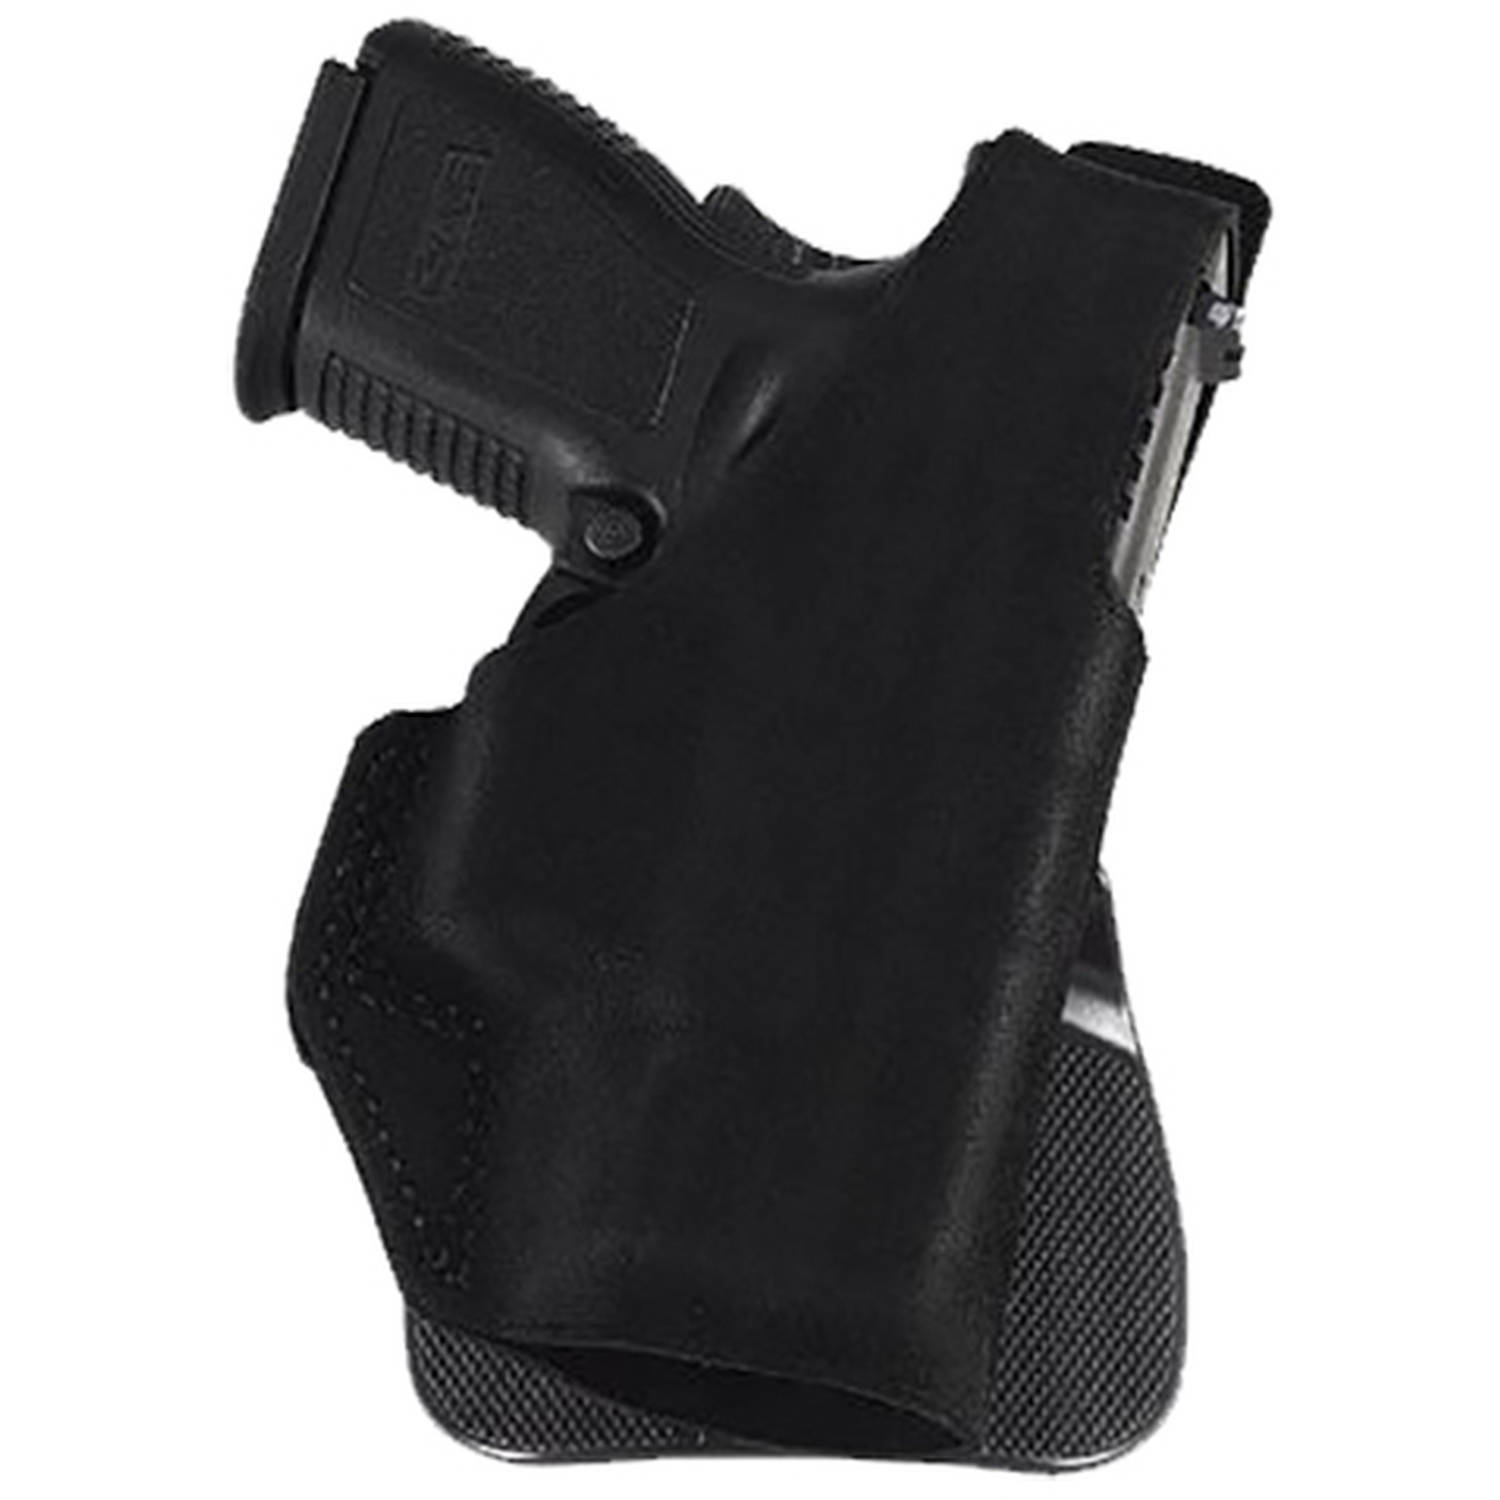 Galco Paddle Lite Holster, Black, Right Hand by Galco